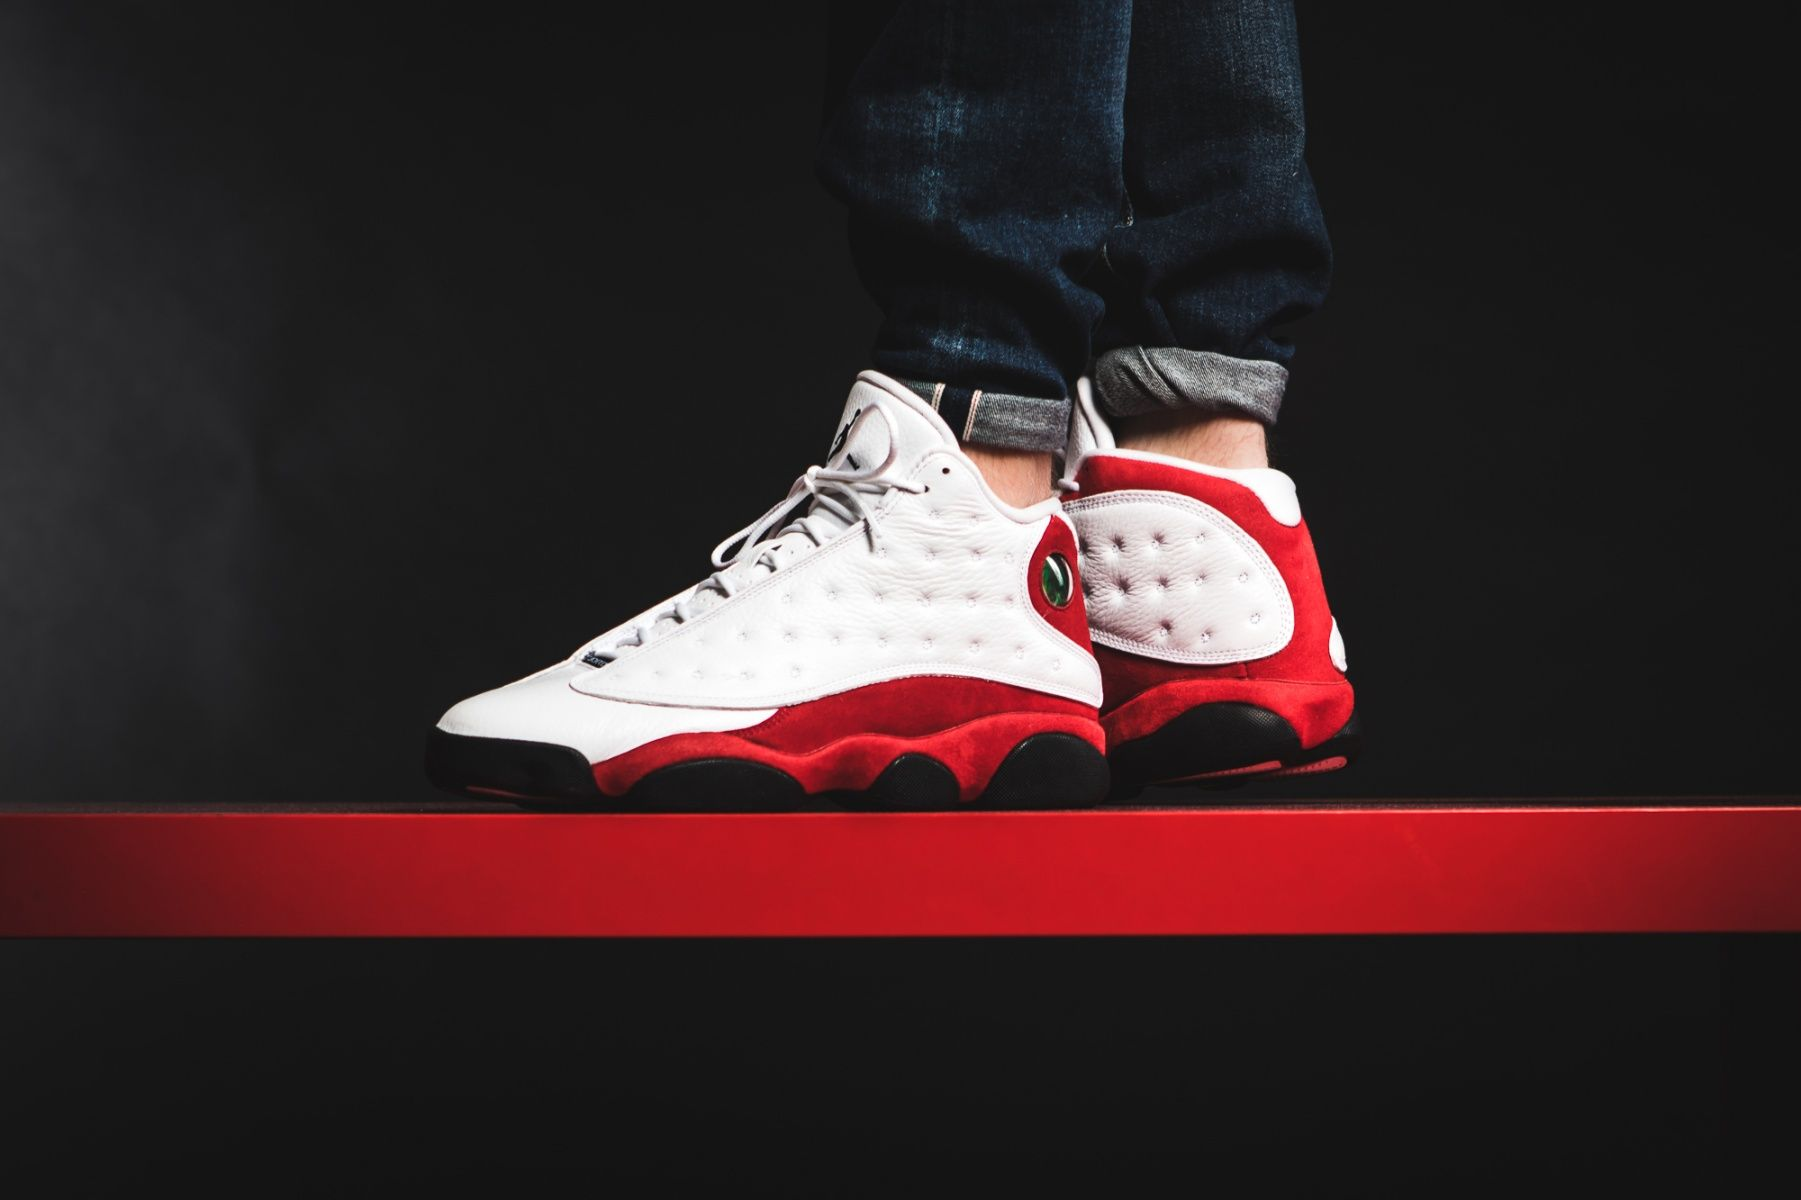 Nike Air Jordan 13 Retro OG (414571-122) Chicago 2017 White Varsity ... 215e3a442